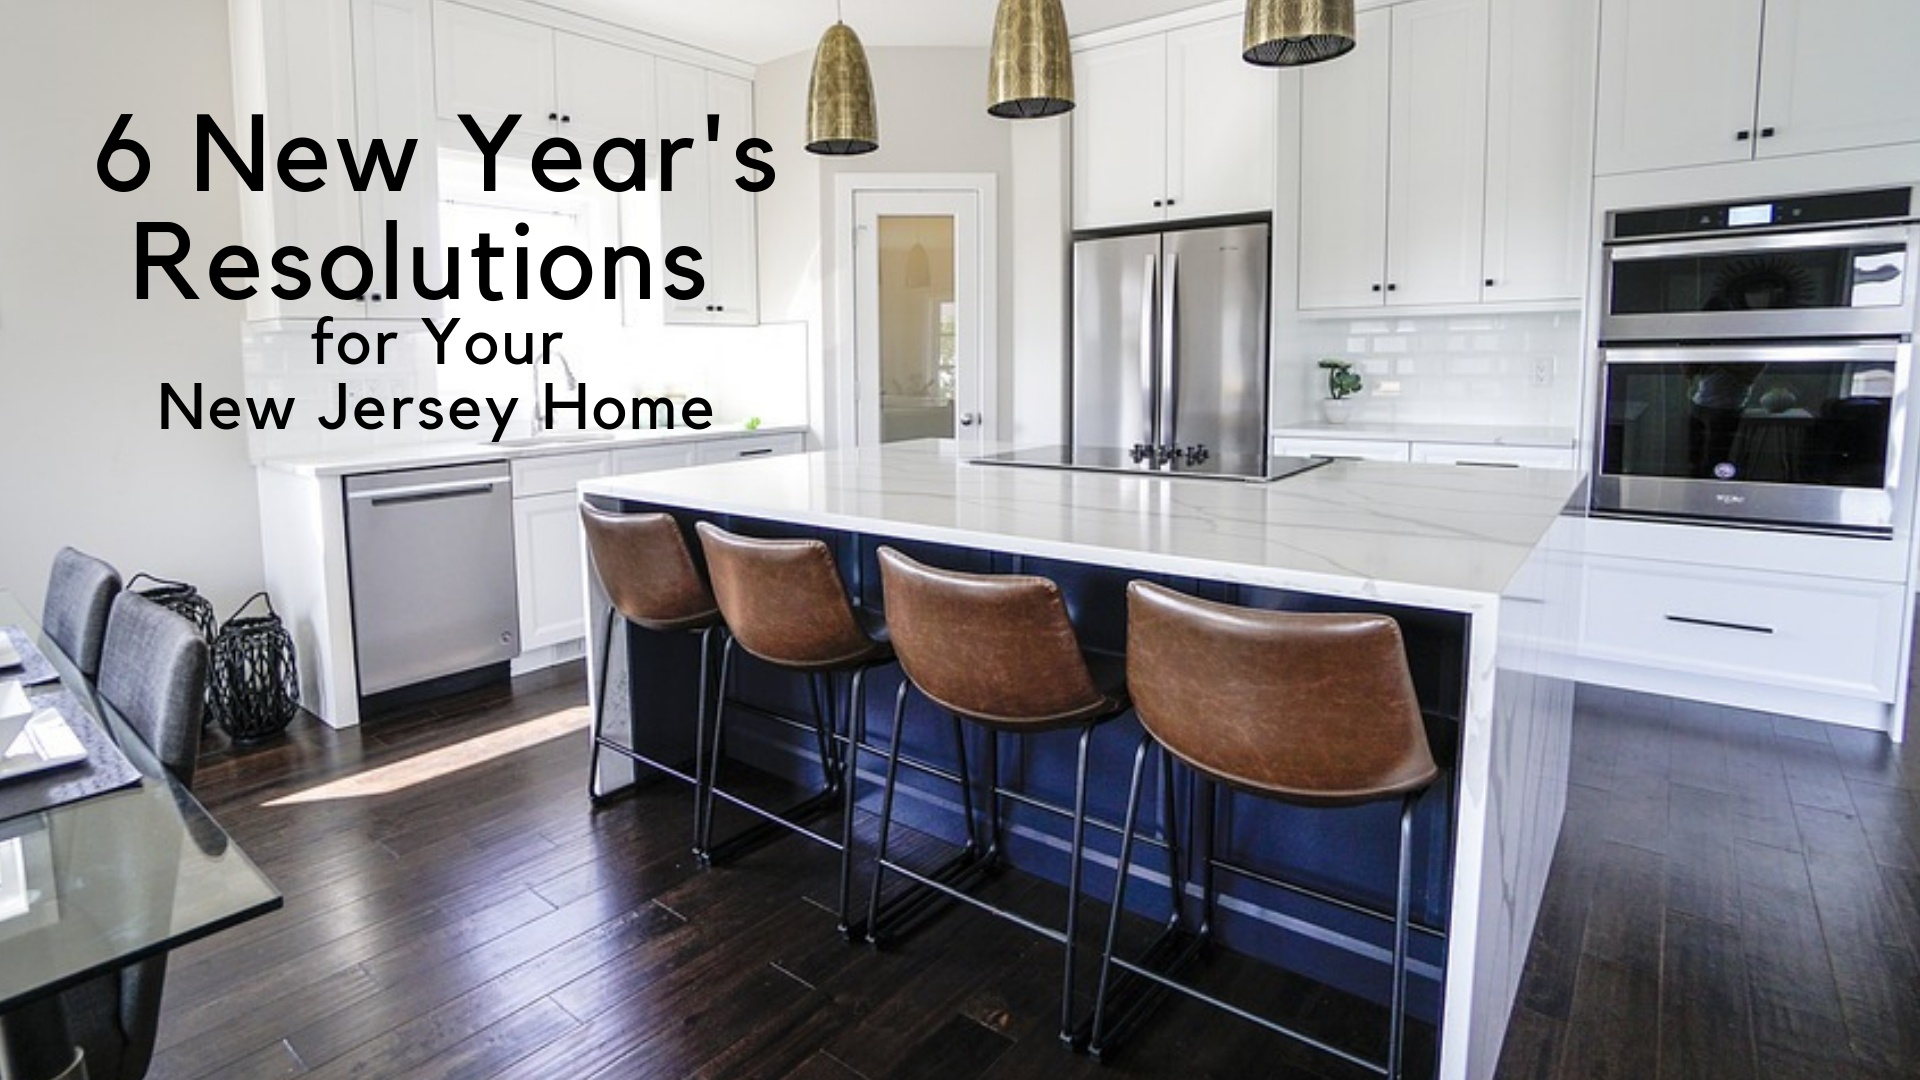 6 New Year's Resolutions for Your New Jersey Home